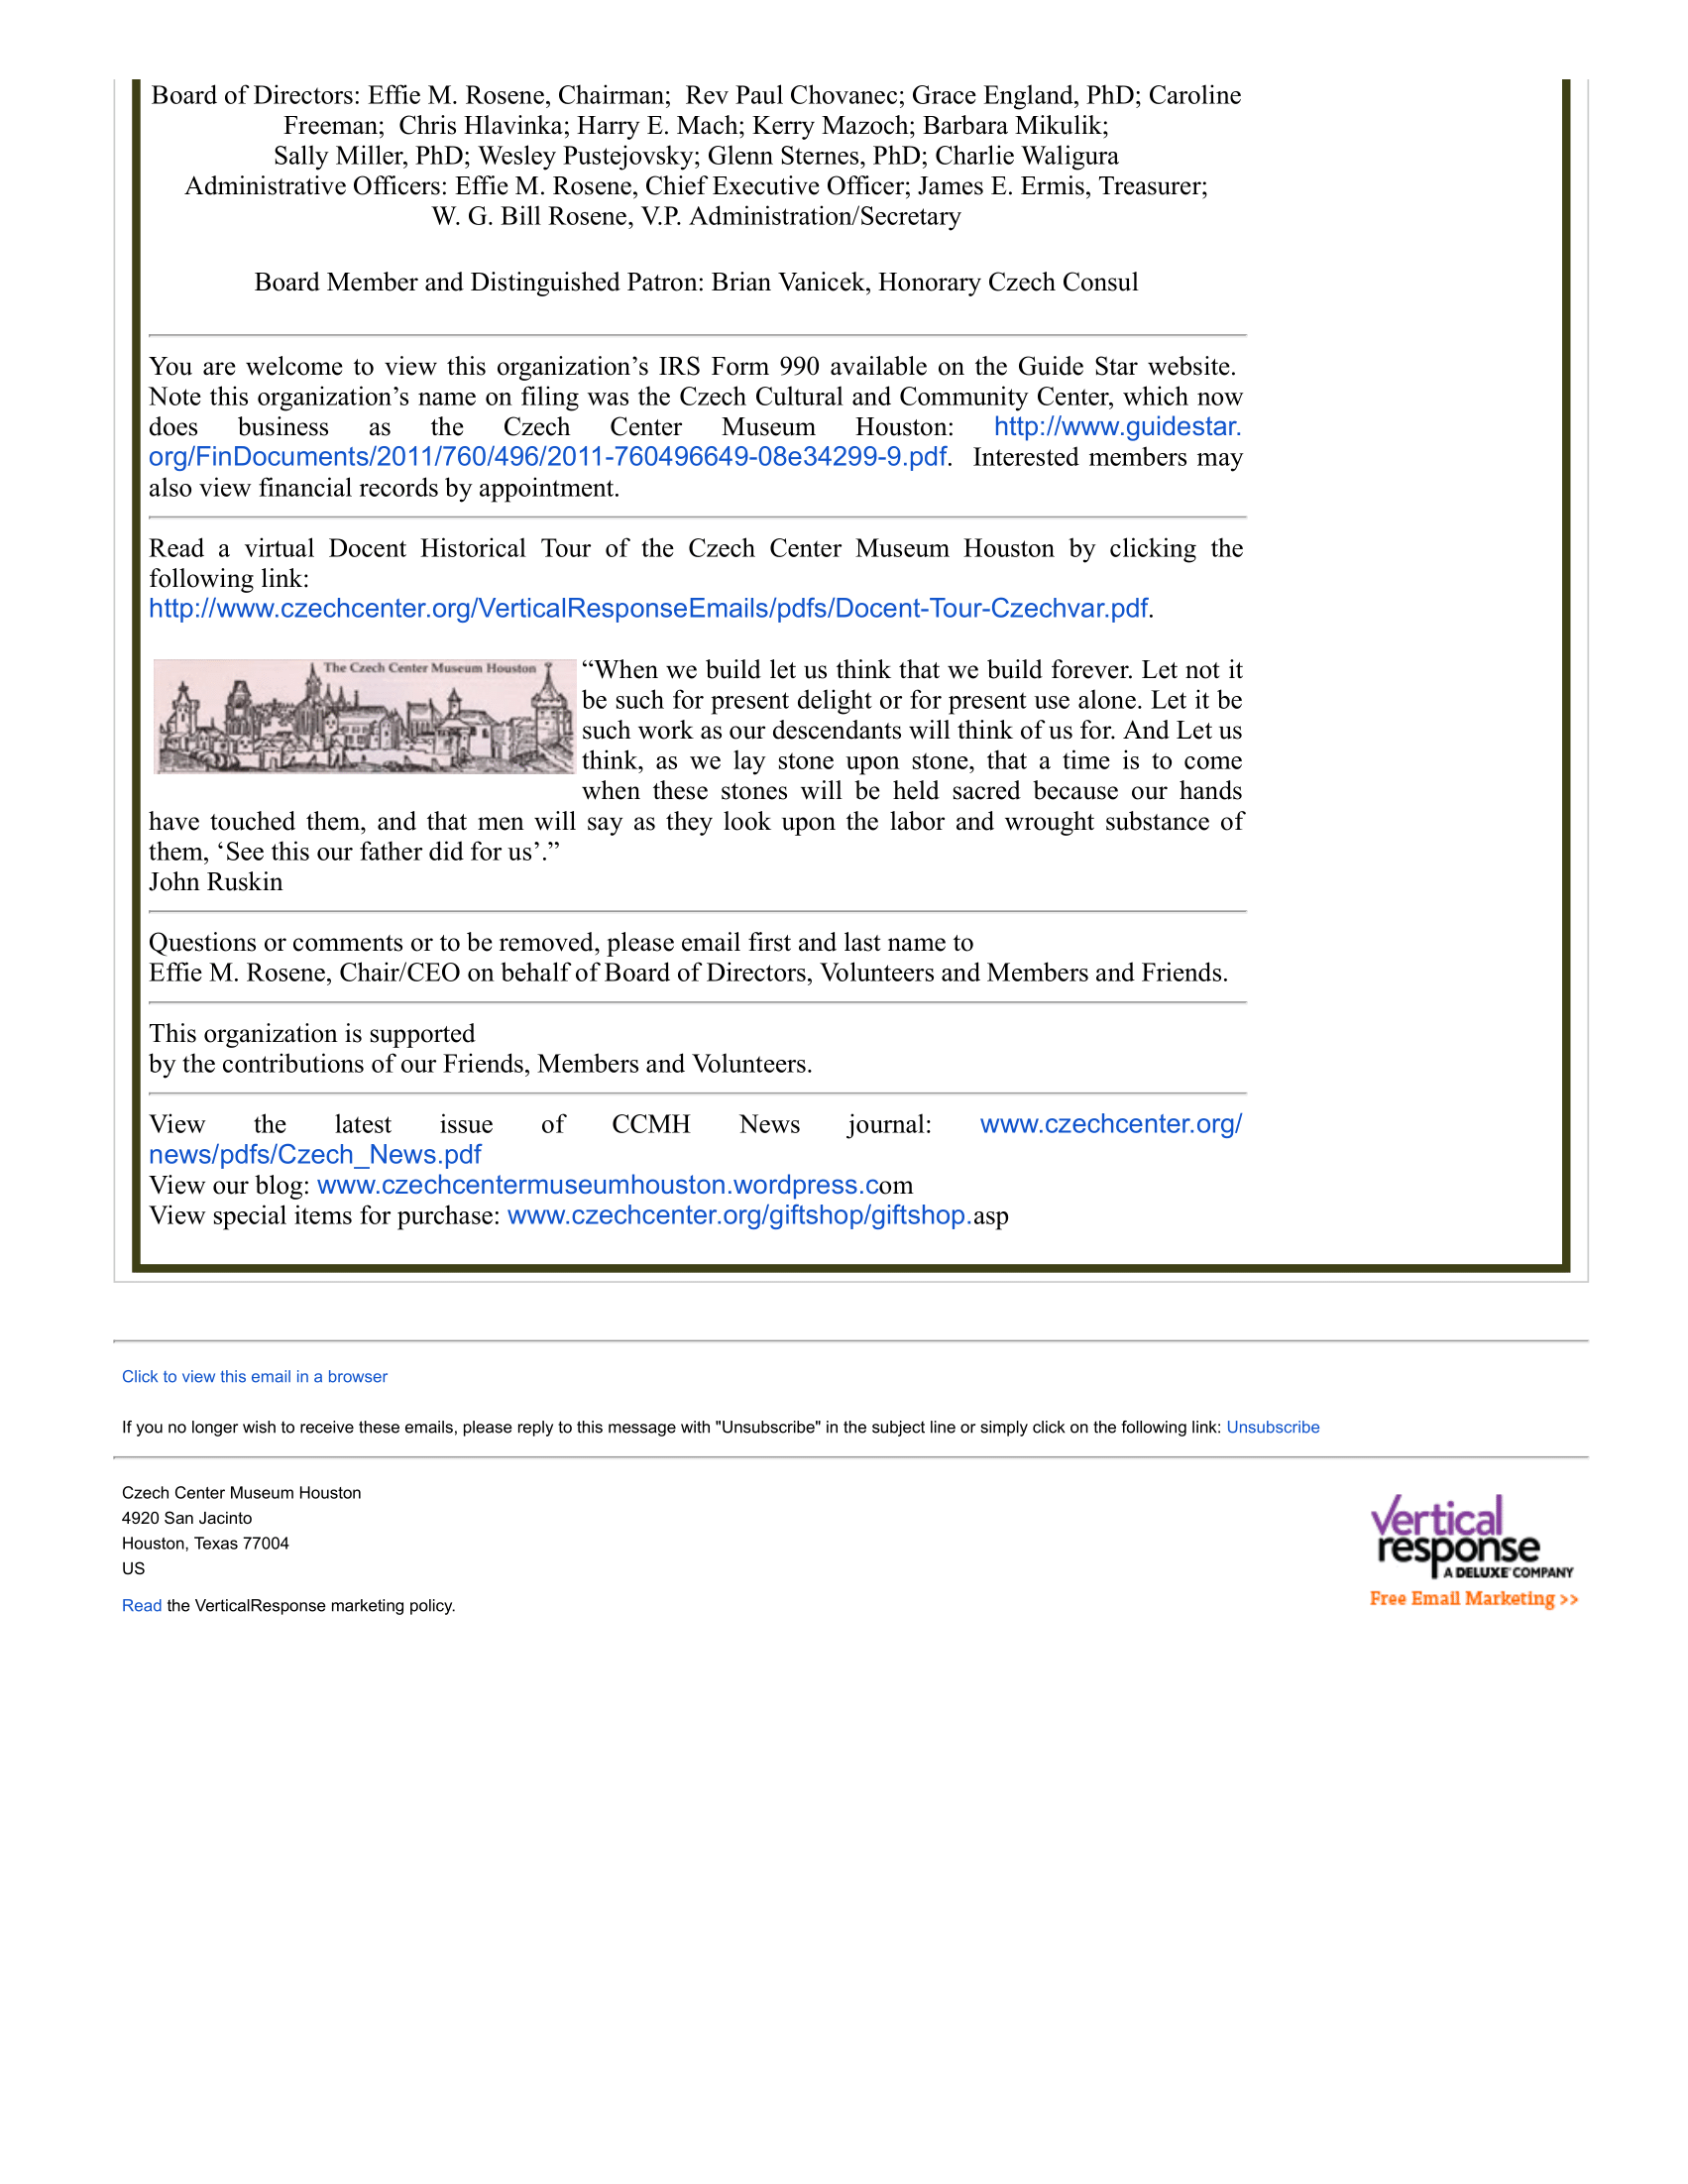 Czech Center Museum Houston Mail - April 2018 CCMH Newsletter-5.png